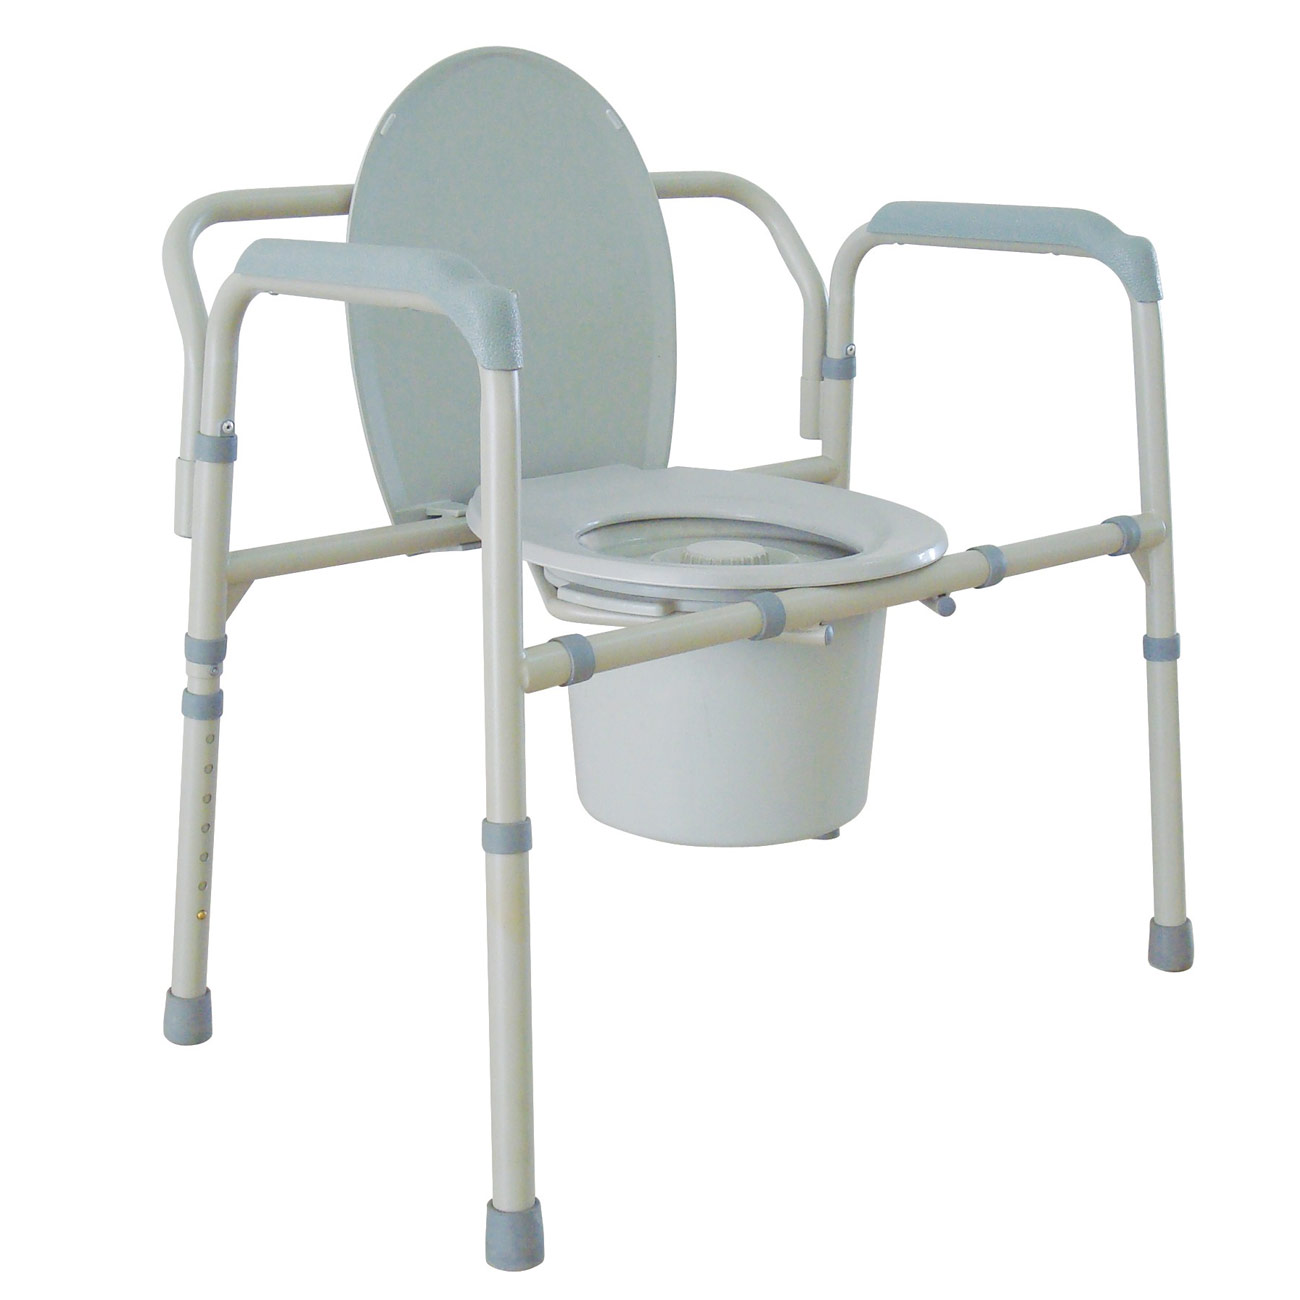 Extra Wide All-in-one Steel Commode -up to 500 lbs